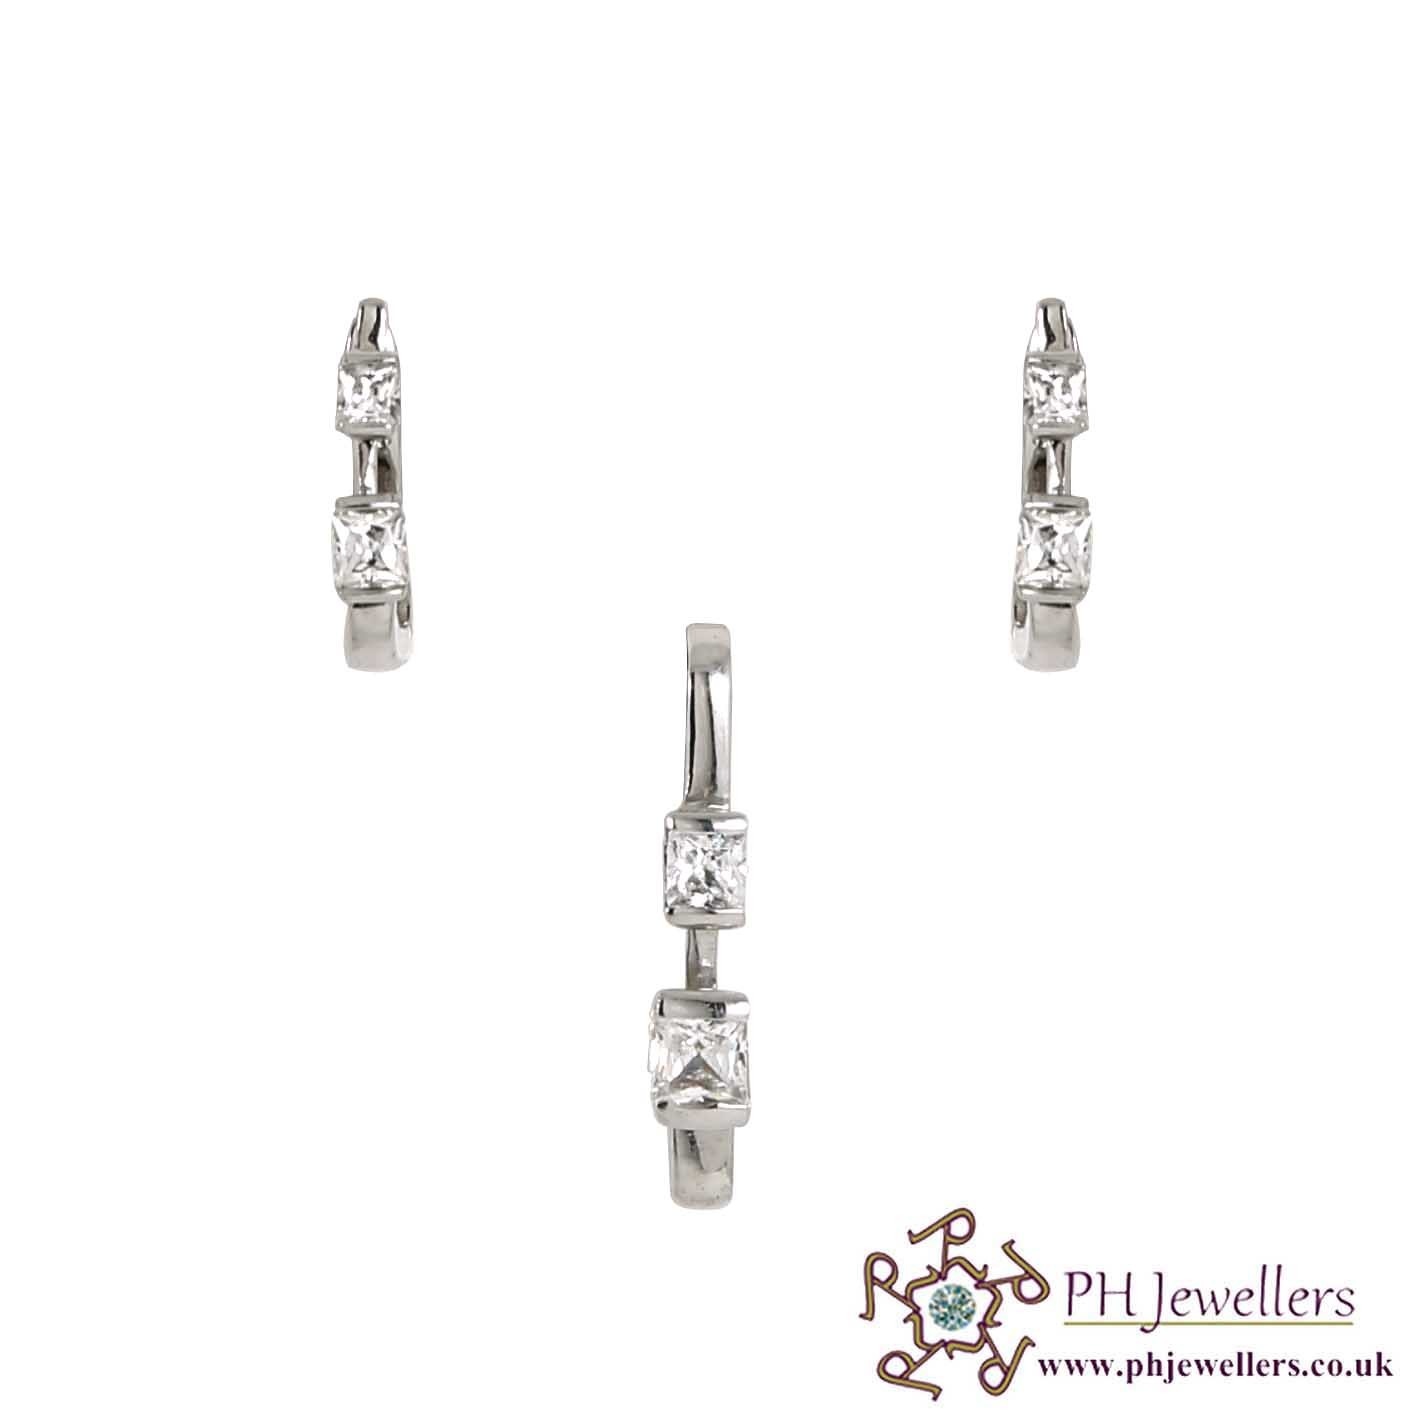 18CT 750 Hallmark White Gold Pendant Set CZ WGPS4